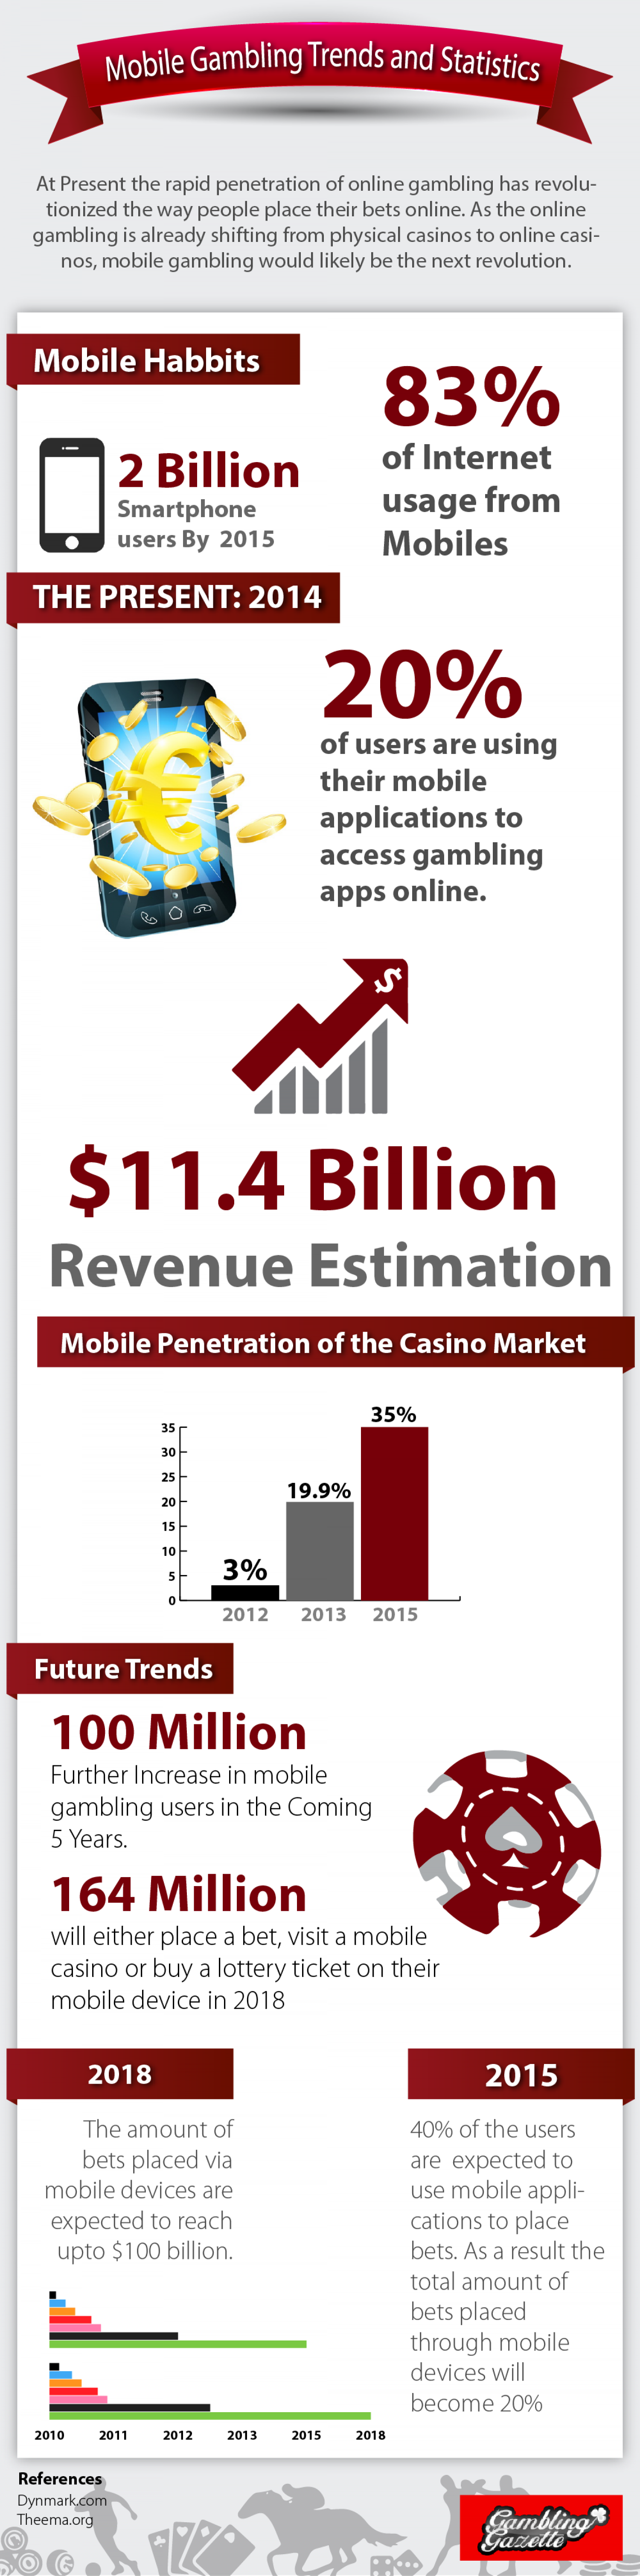 Mobile Gambling Trends & Statistics Infographic